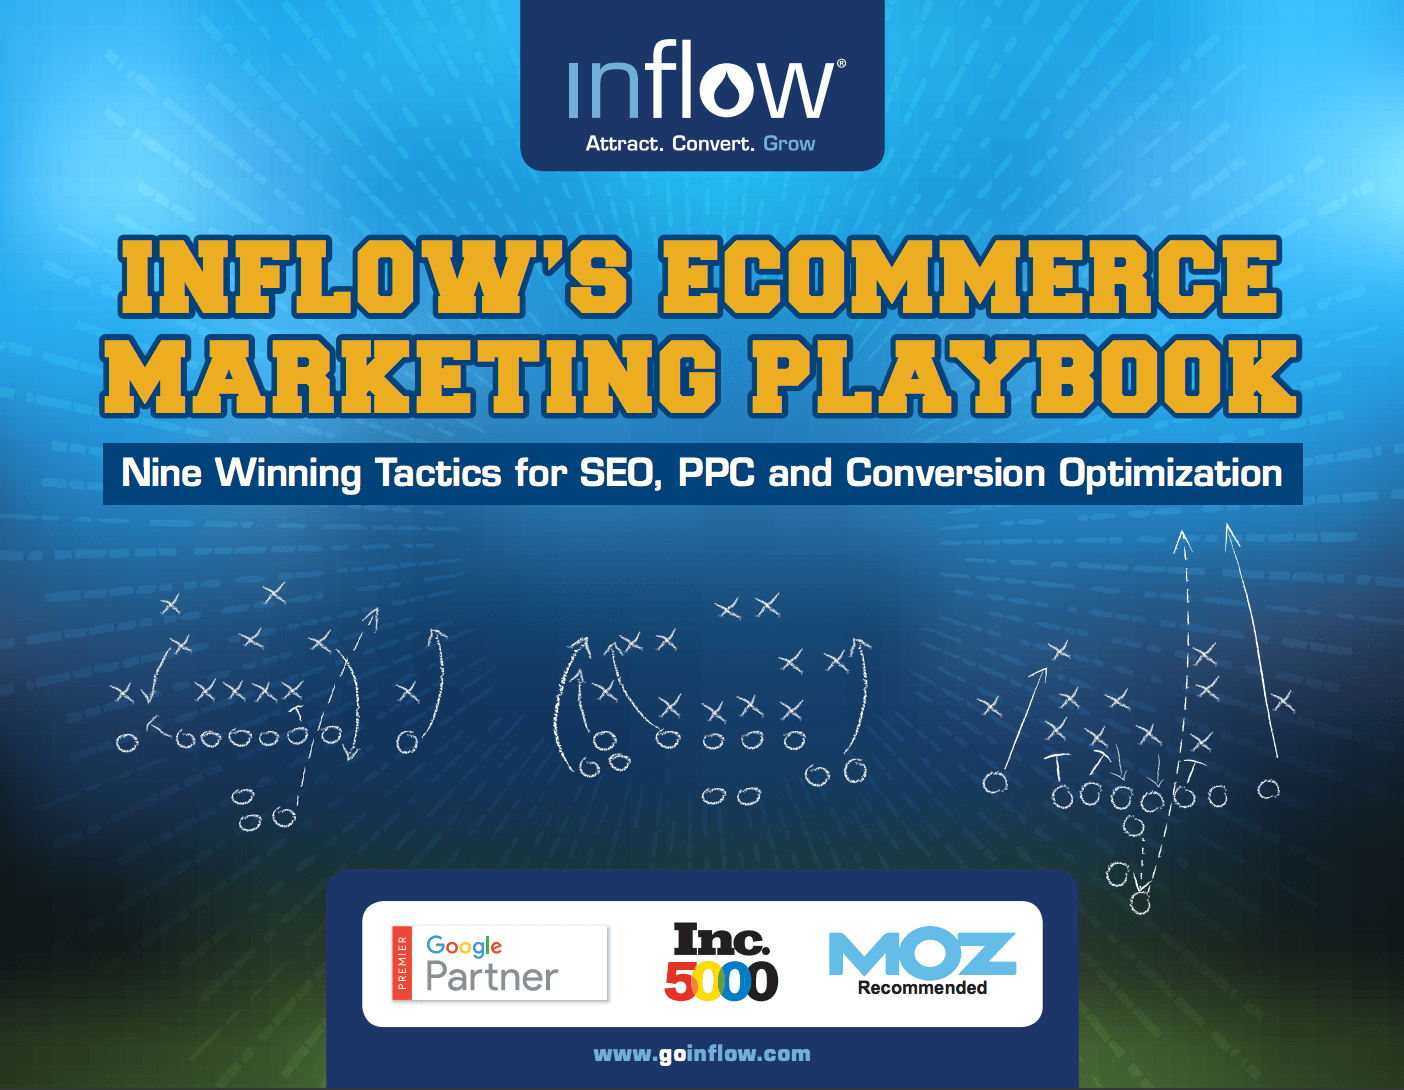 Inflow's eCommerce Marketing Playbook Blog Form Image